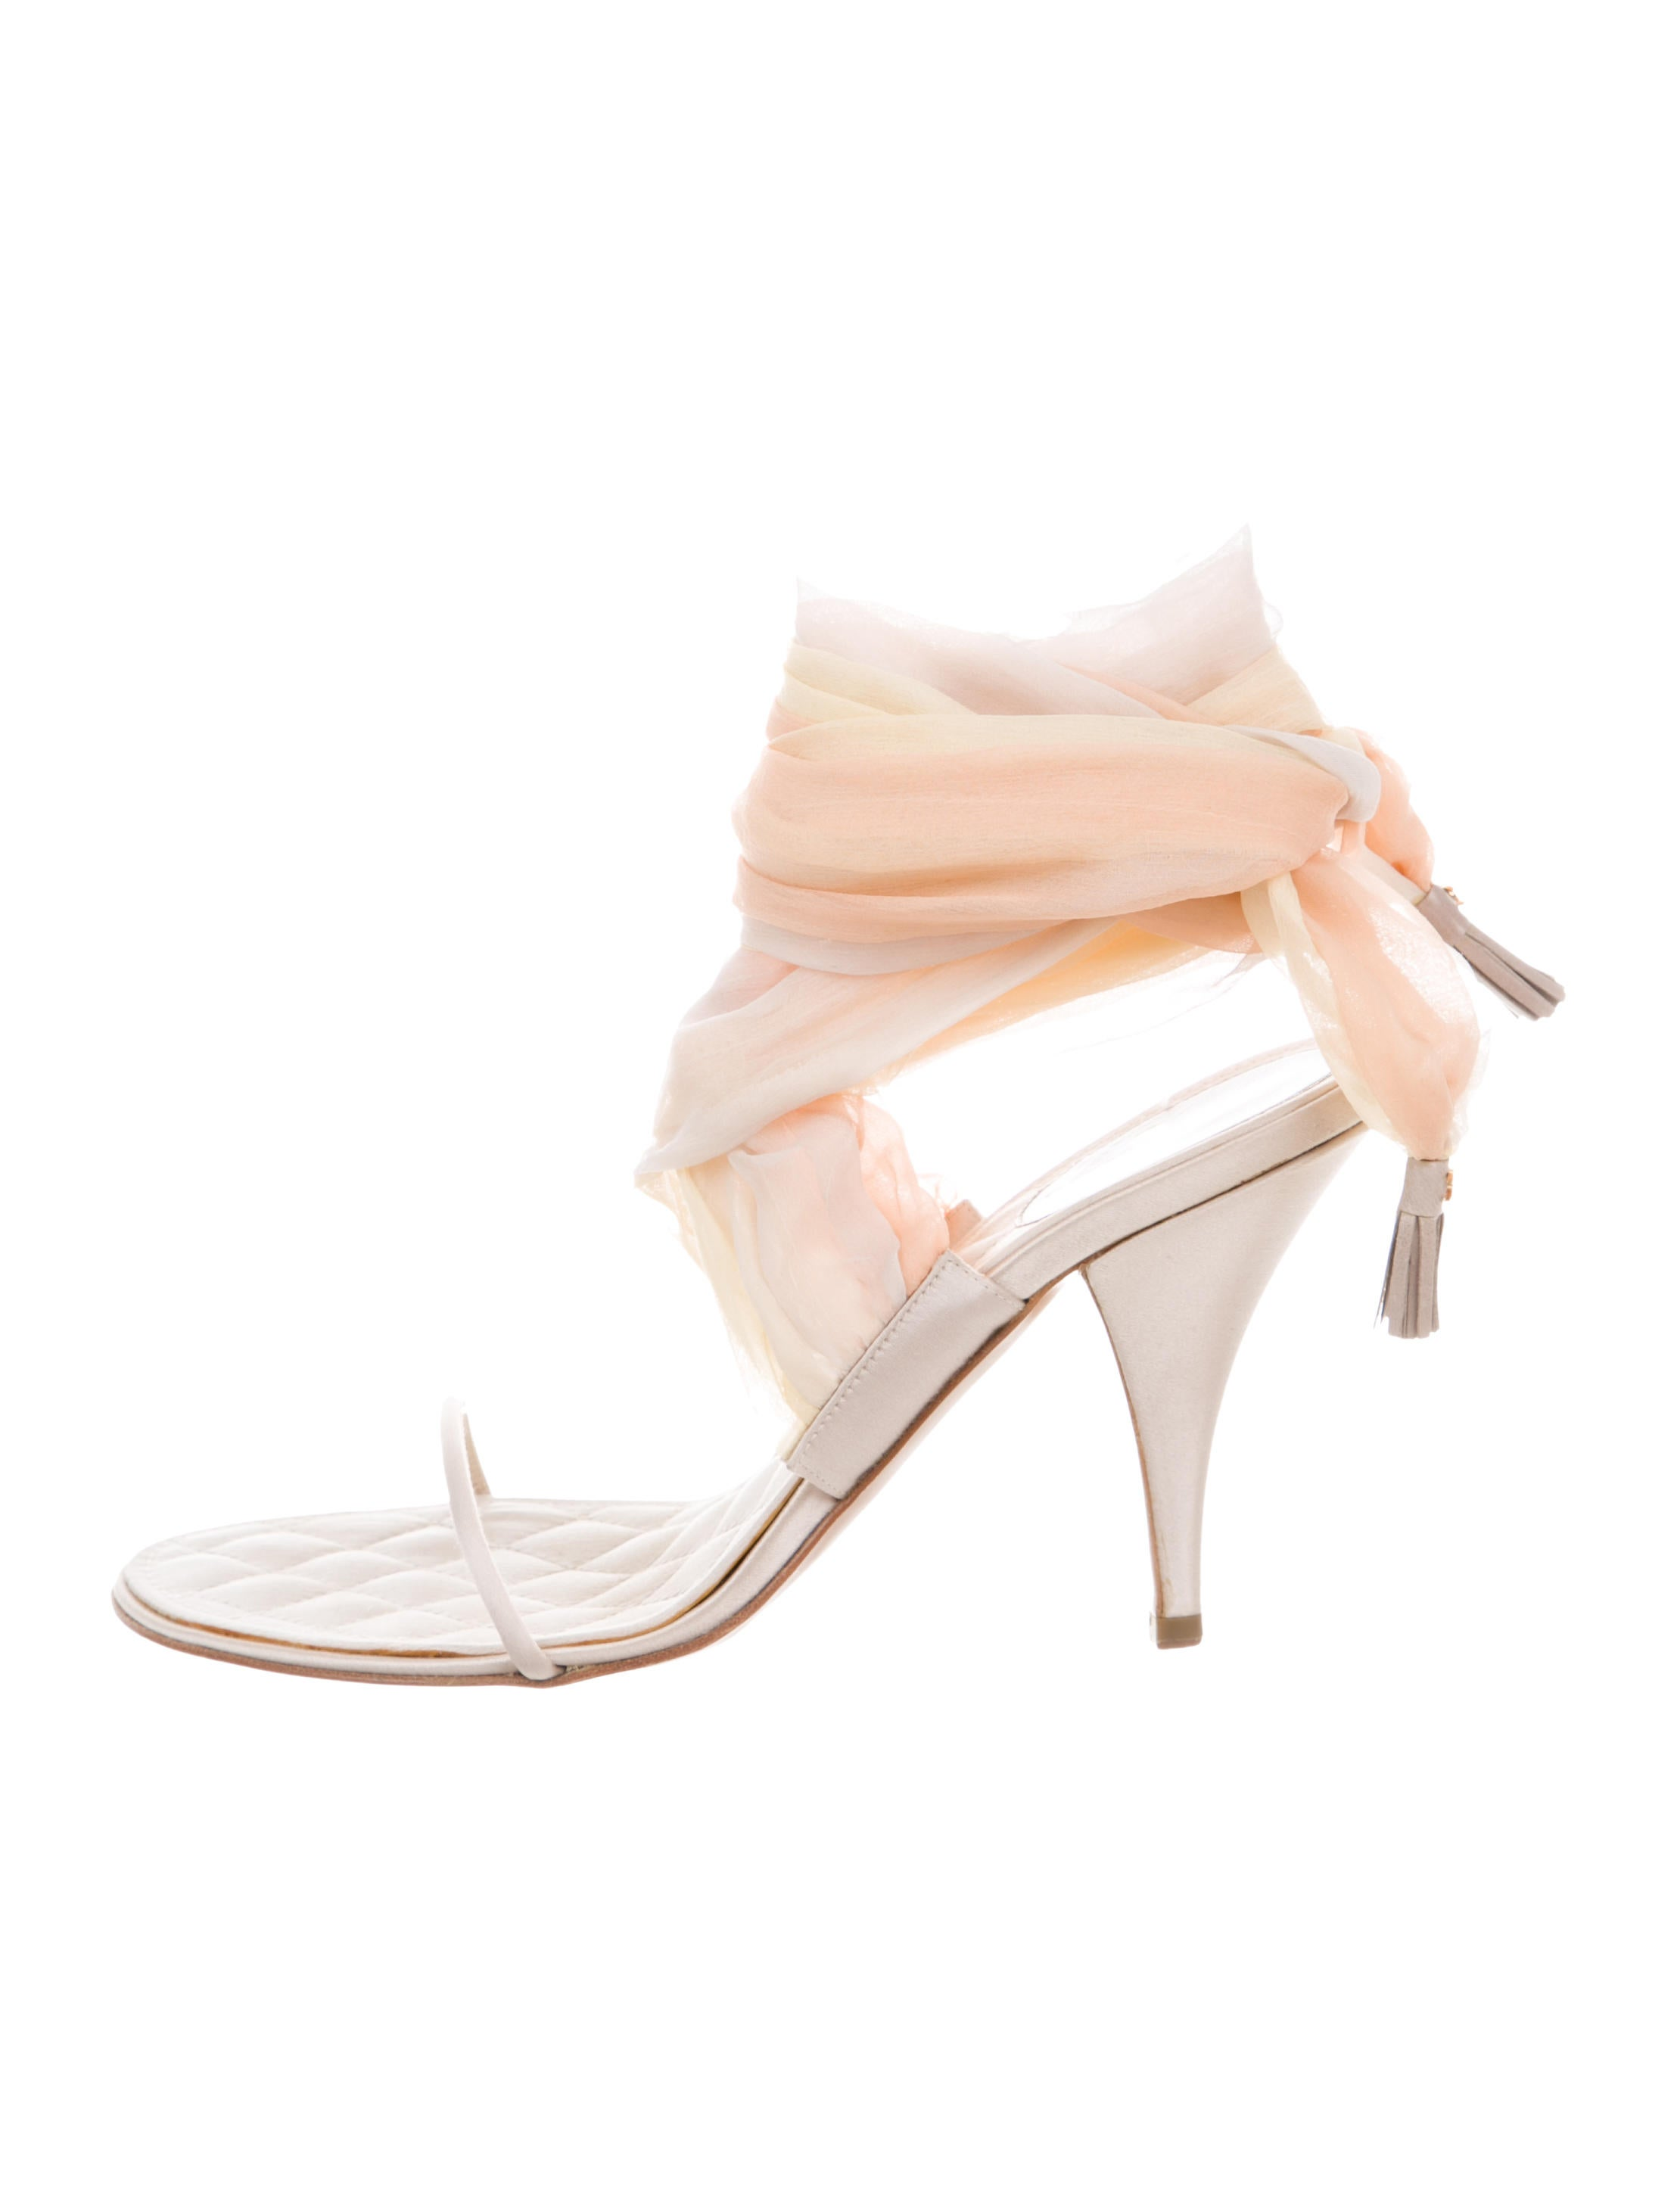 3d47f7bb4266 Chanel Satin Lace-Up Sandals - Shoes - CHA343633